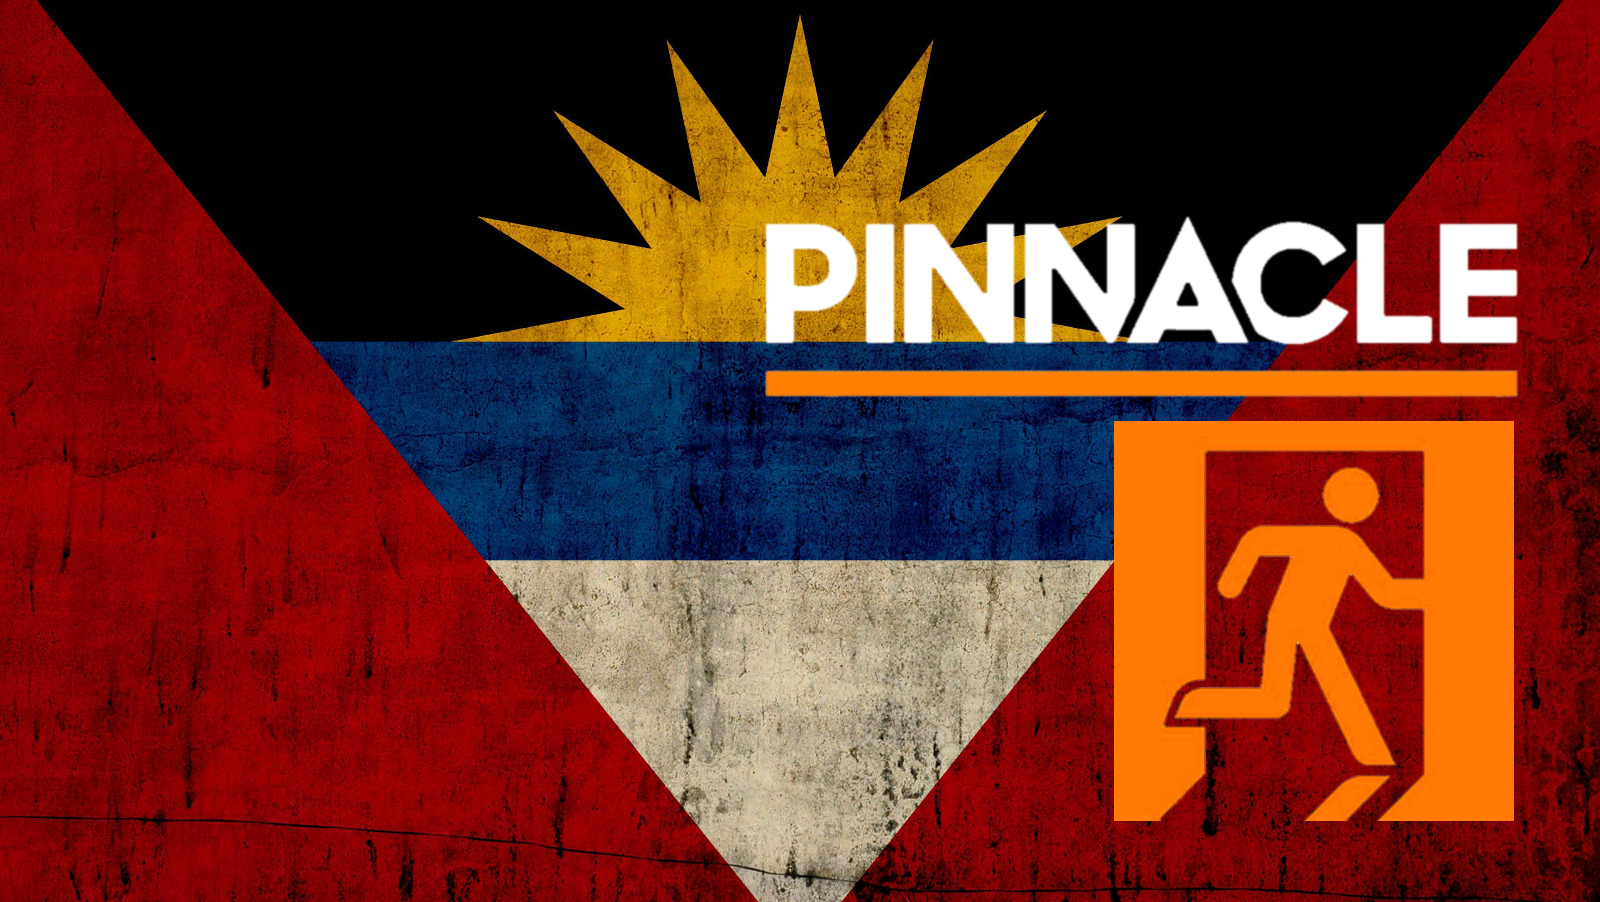 Pinnacle pulling license in Antigua over regulatory quagmire